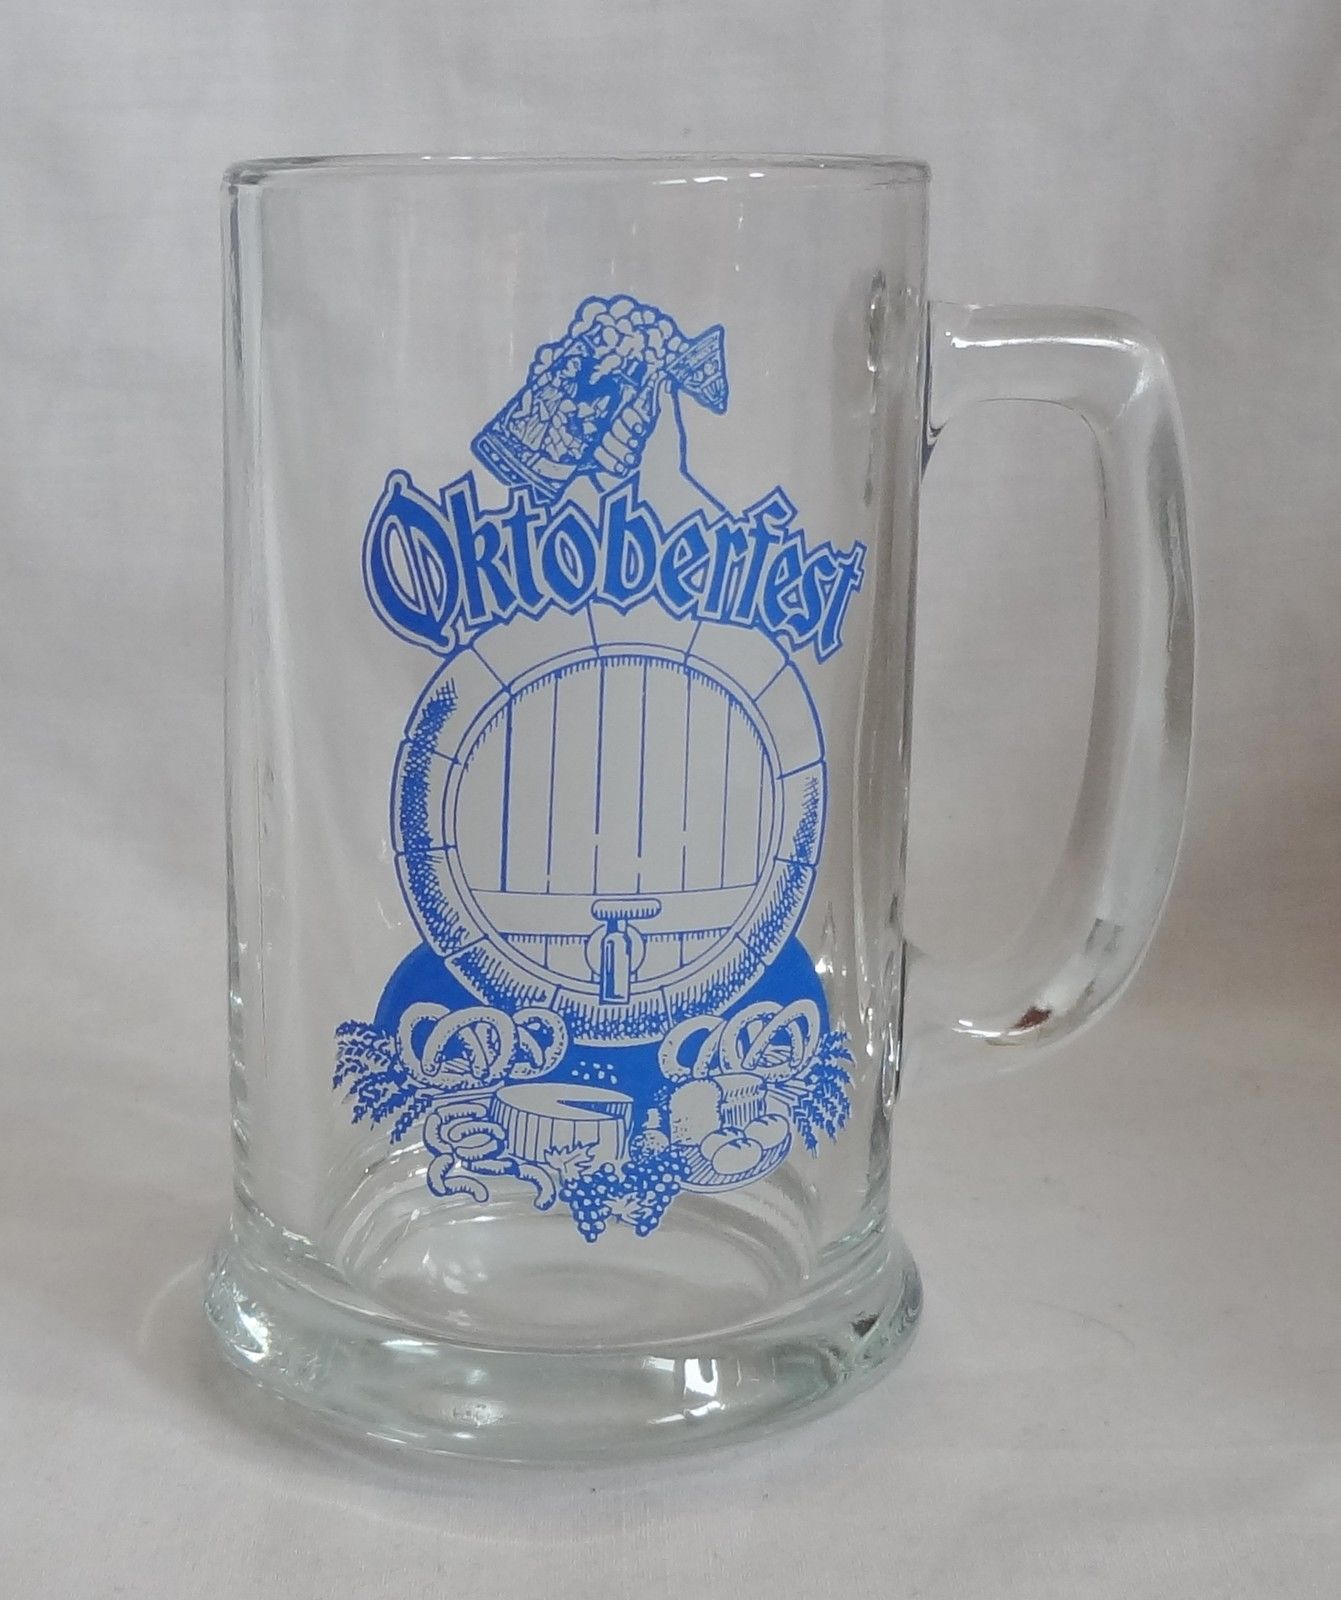 Oktoberfest 14 oz. Glass Beer Keg Mug Barware